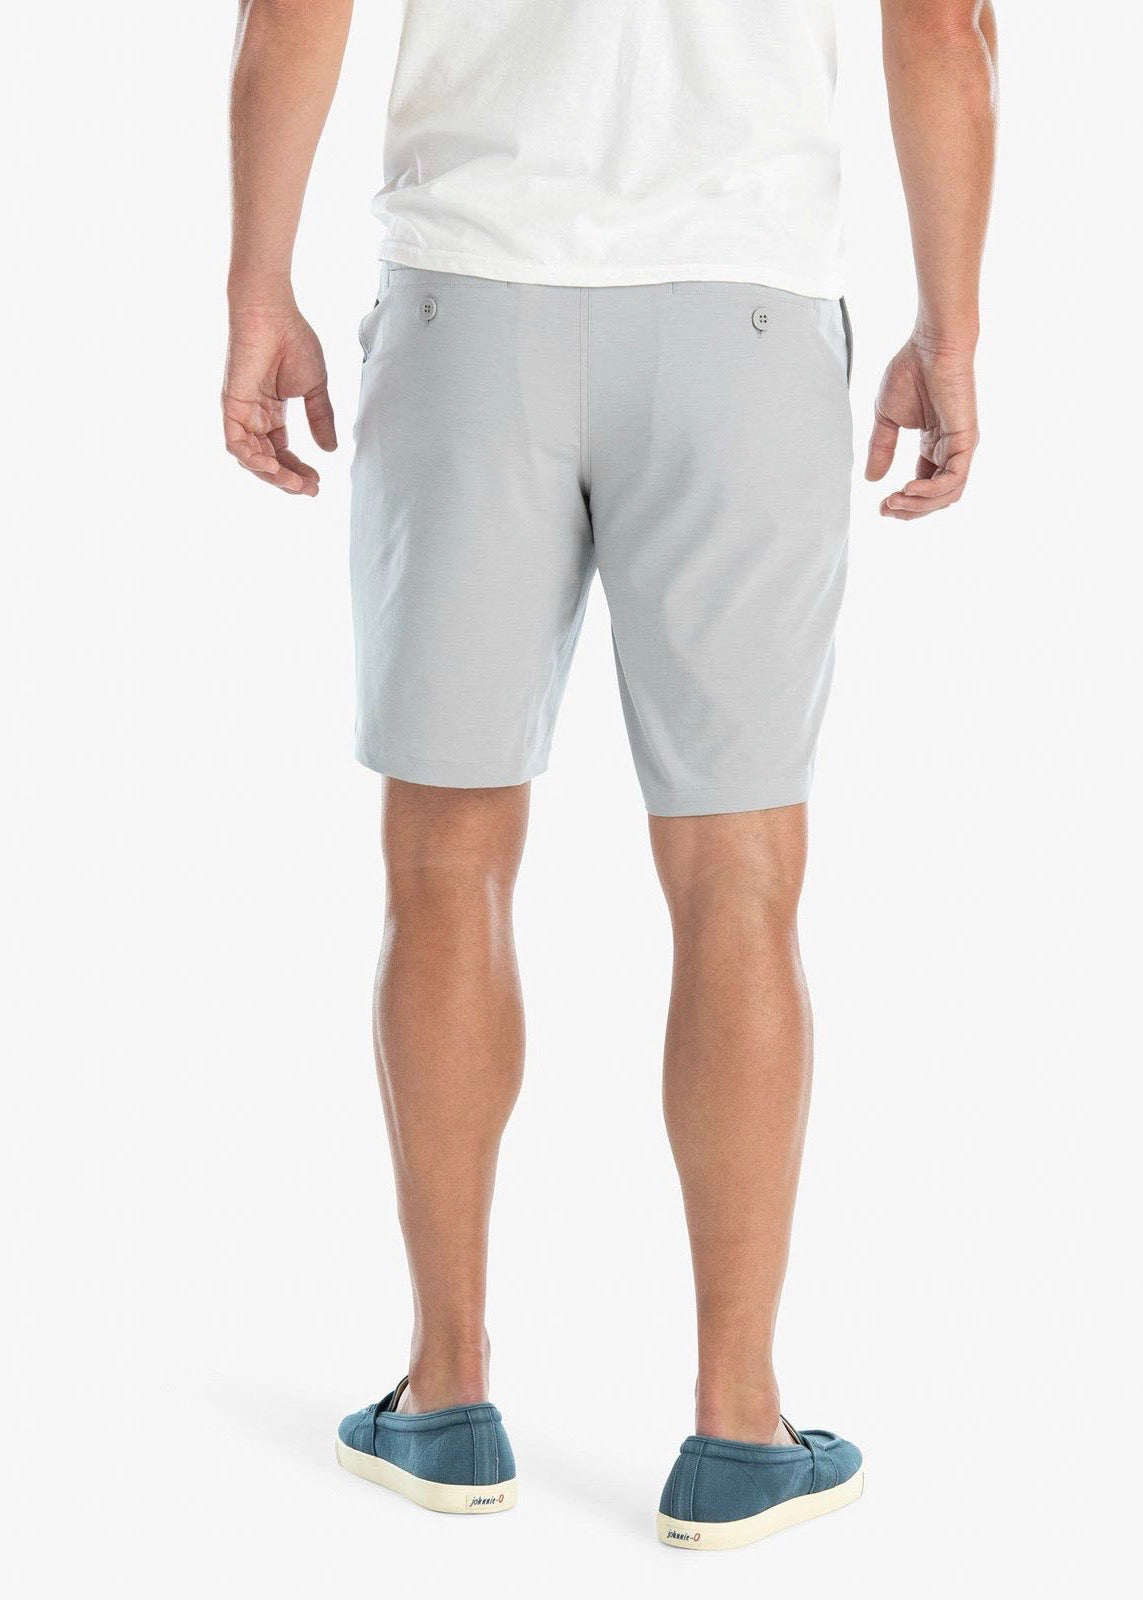 Wyatt Prepformance Shorts